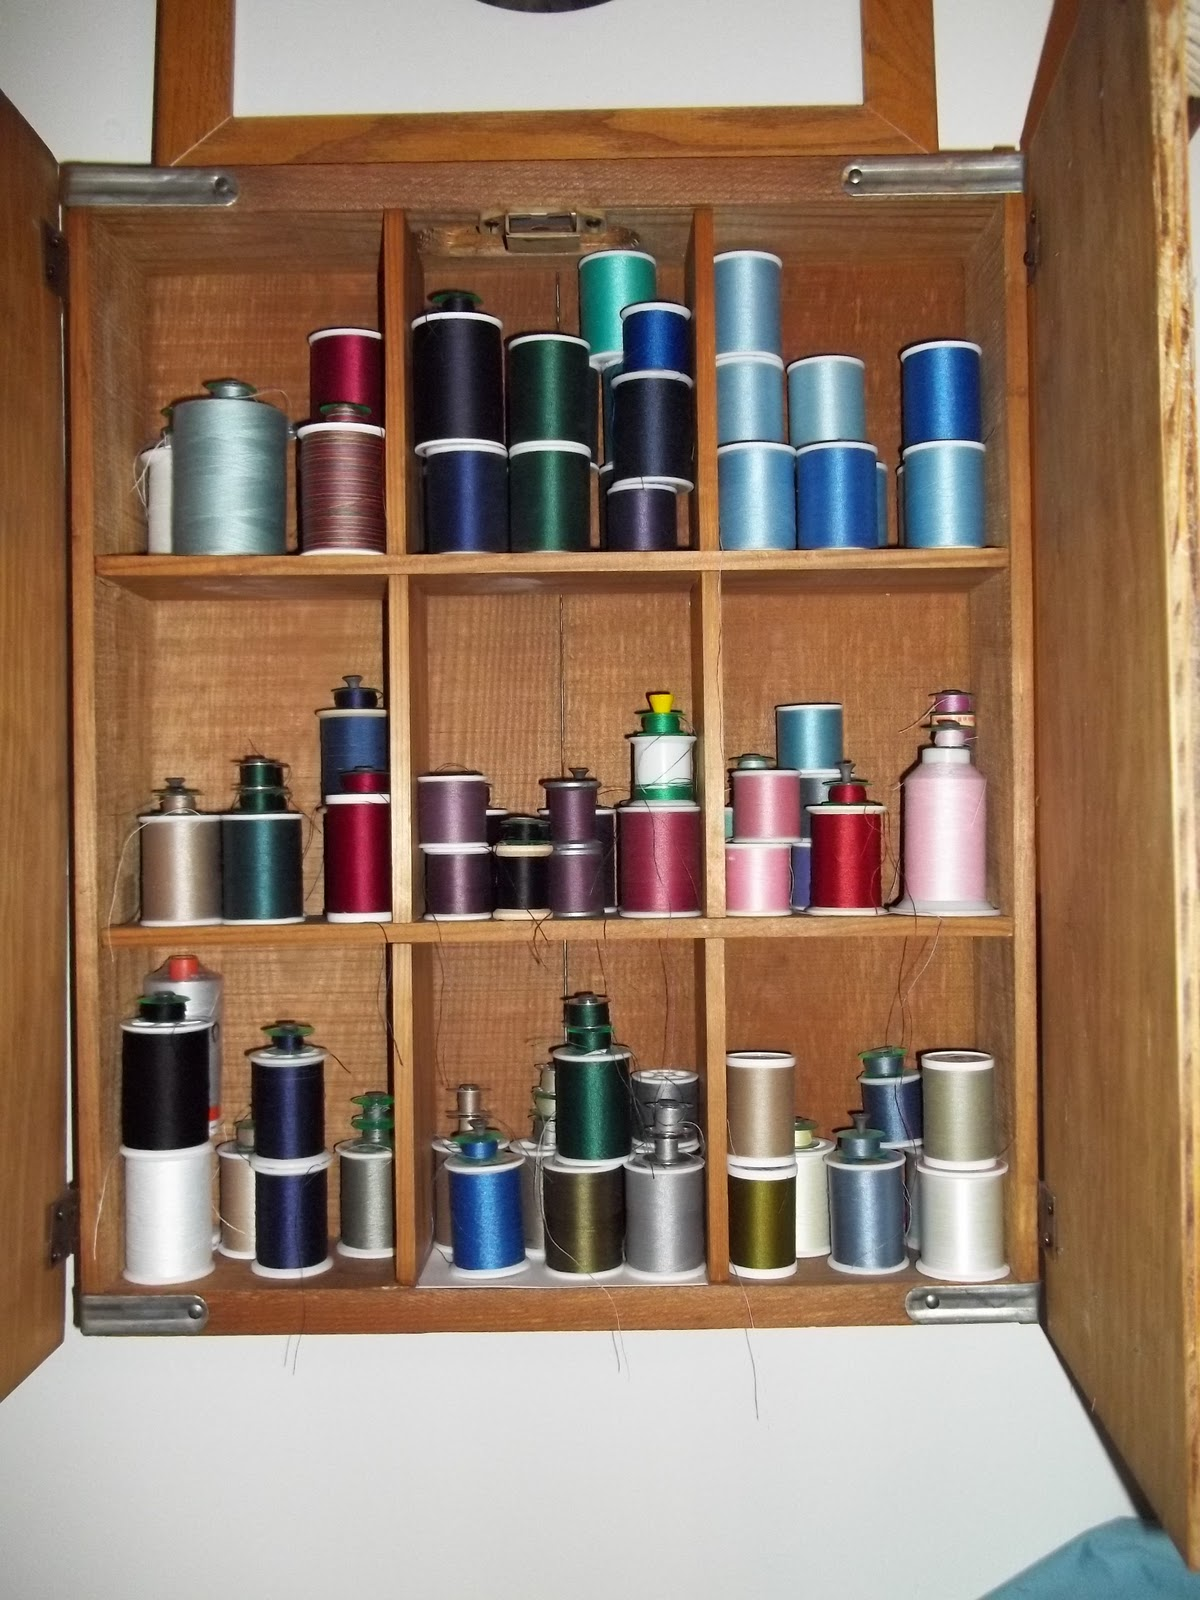 Sewing Thread Storage Wall Cabinets http://365daysotherramblings.blogspot.com/2011/02/cleaning-sewing-room.html